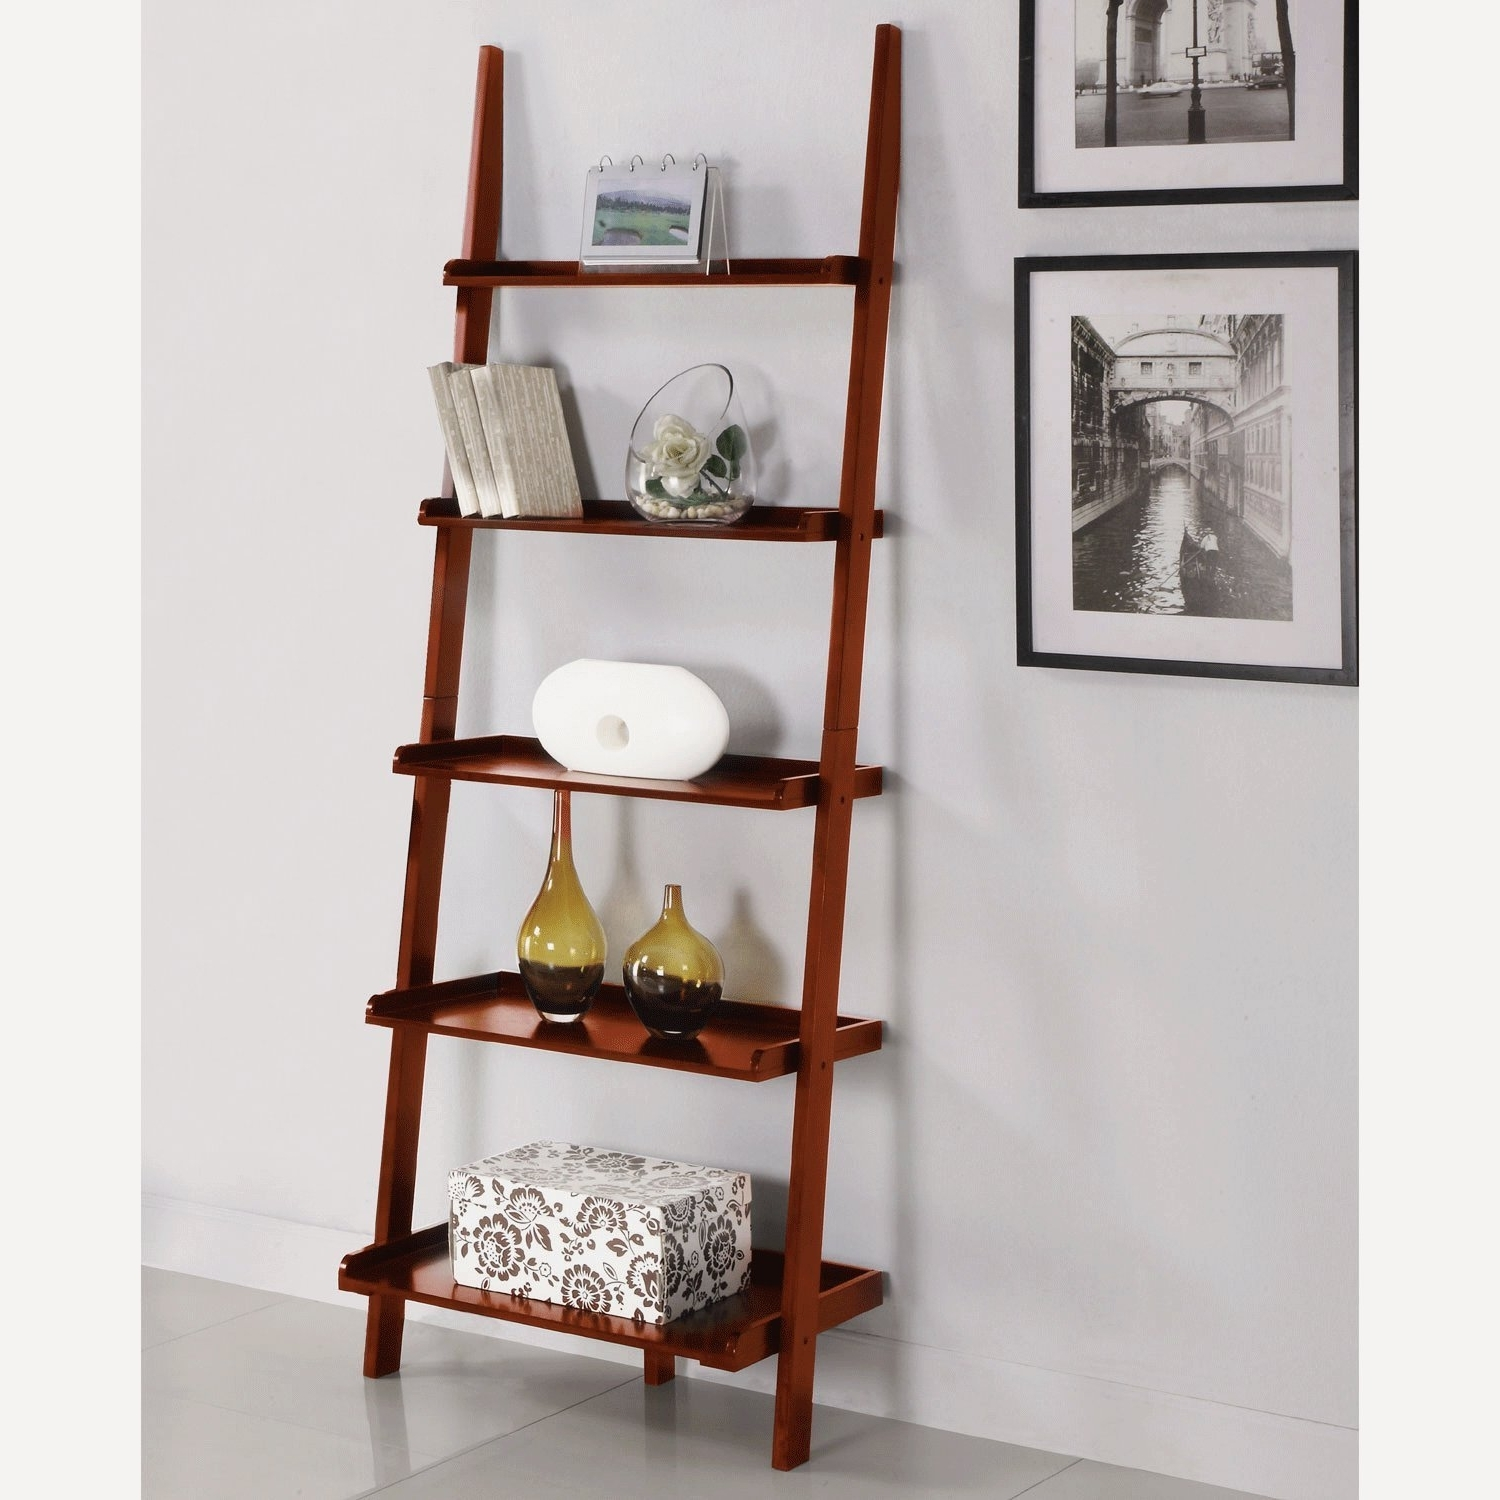 Most Recent Leaning Shelf Bookcases Intended For Amazon: Athomemart Leaning Ladder Bookshelf In Cherry Finish (View 7 of 15)